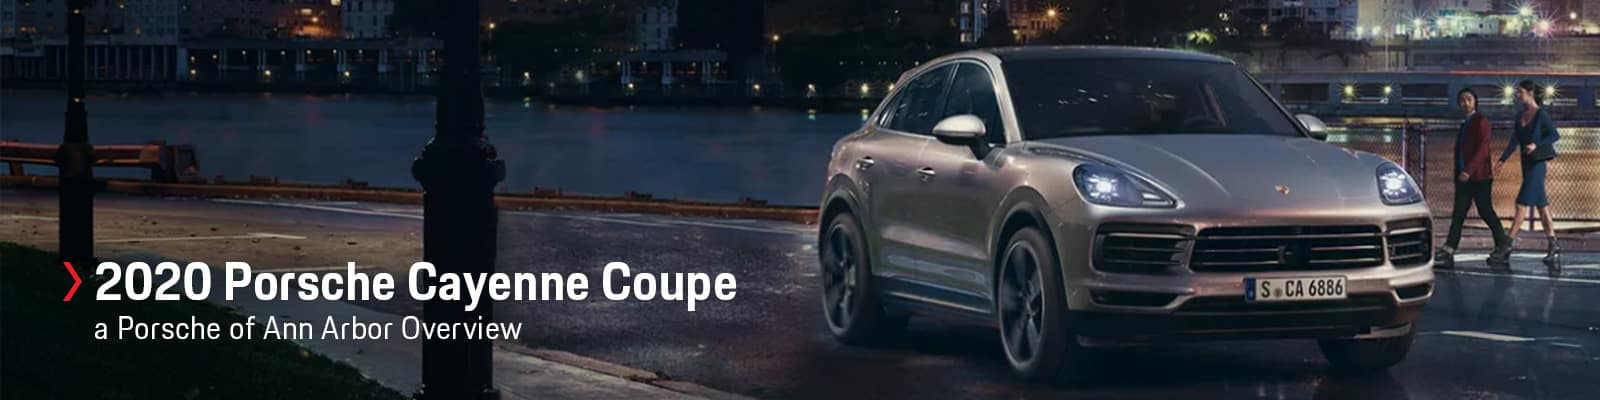 2020 Porsche Cayenne Coupe Model Overview at Porsche Ann Arbor